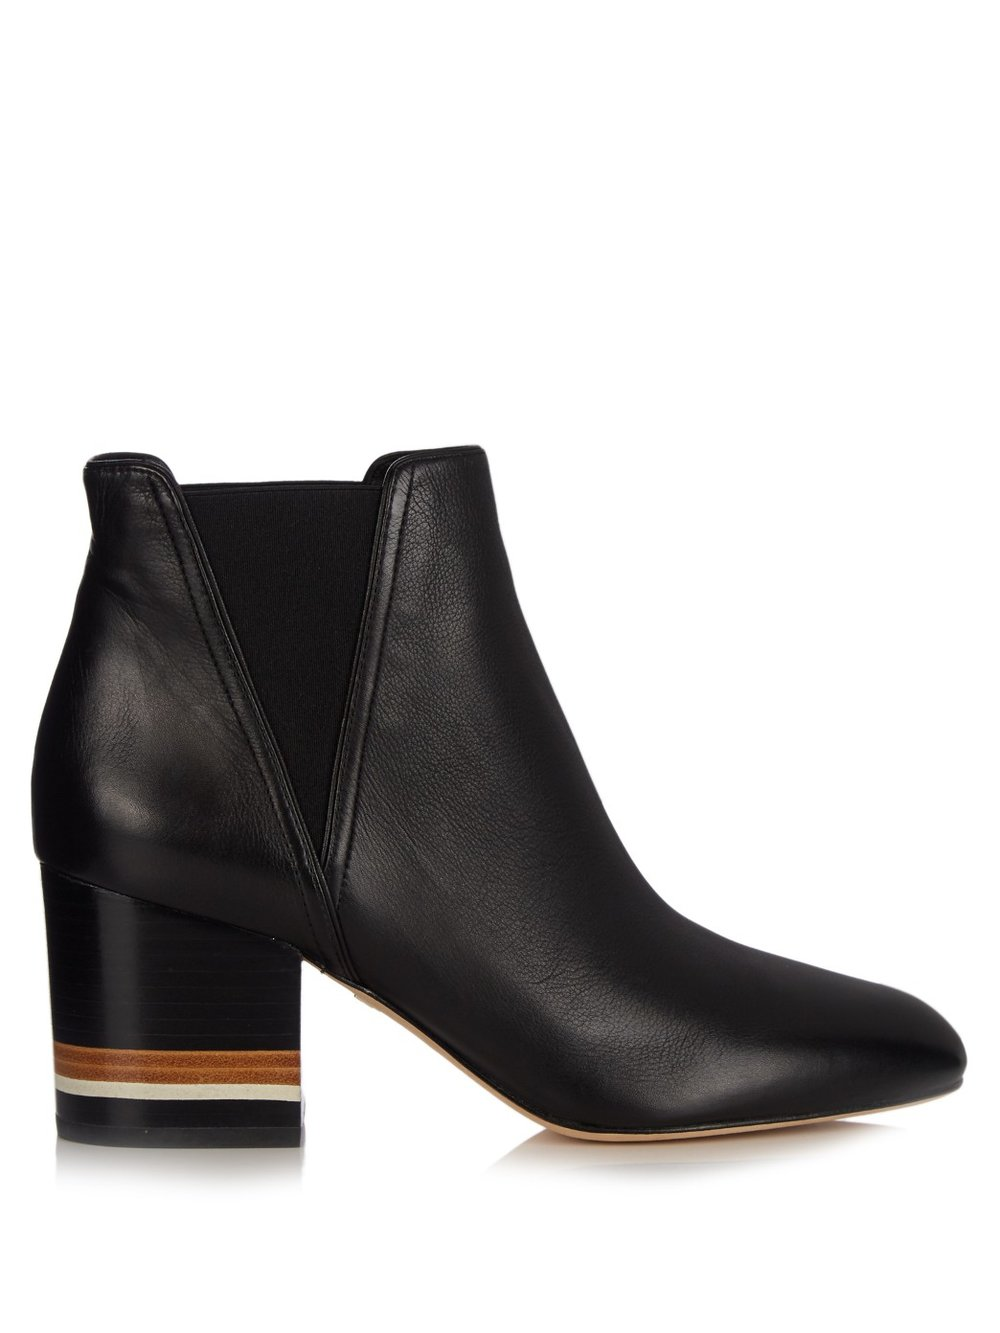 DVF Deblin Ankle Boots, $348